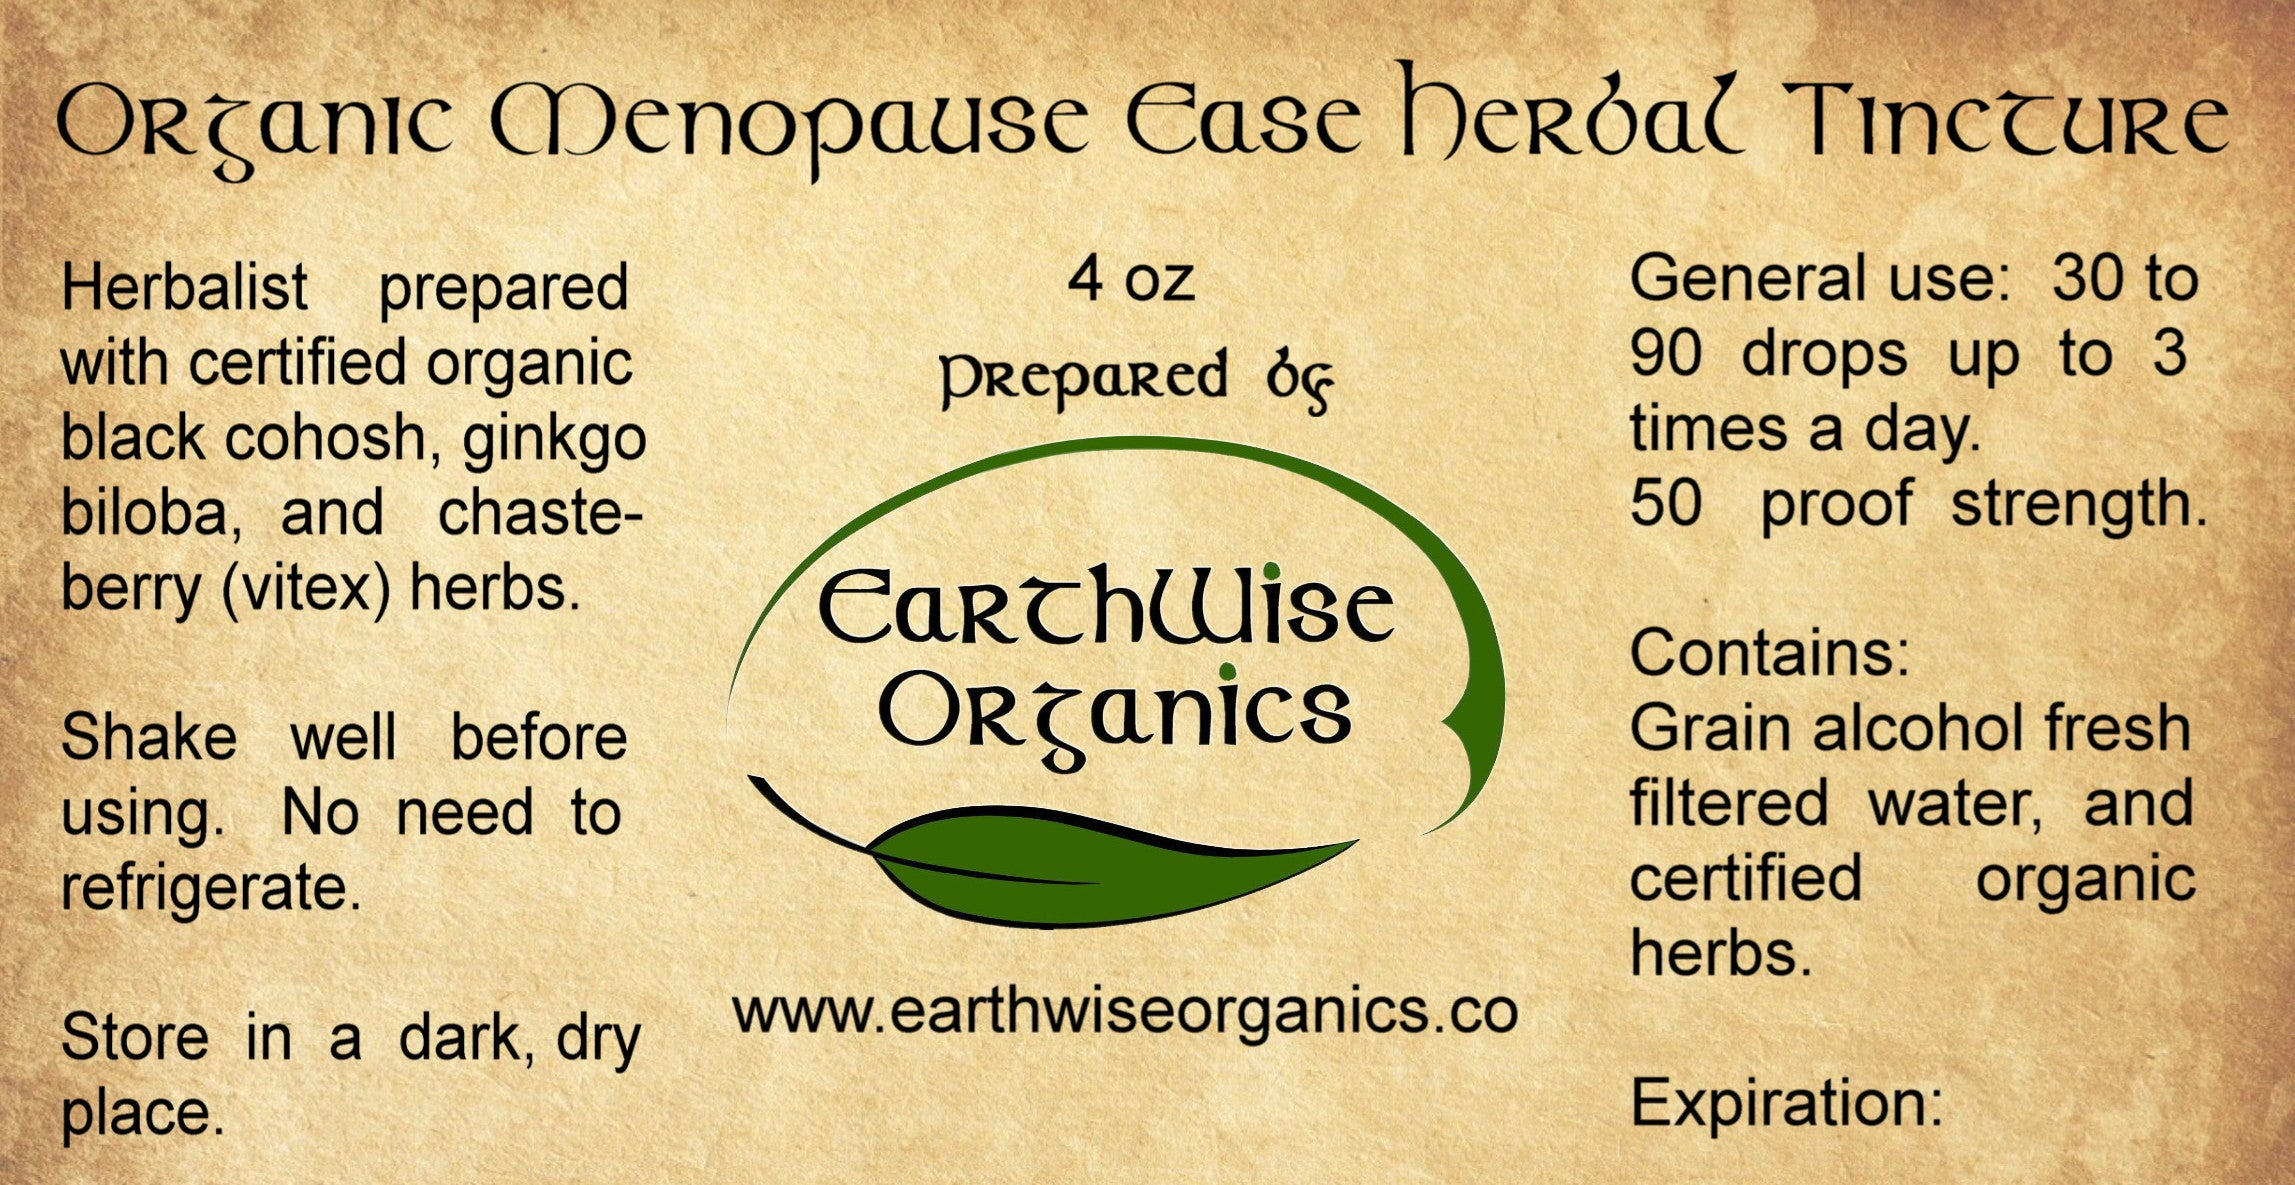 menopause organic herbal tincture label